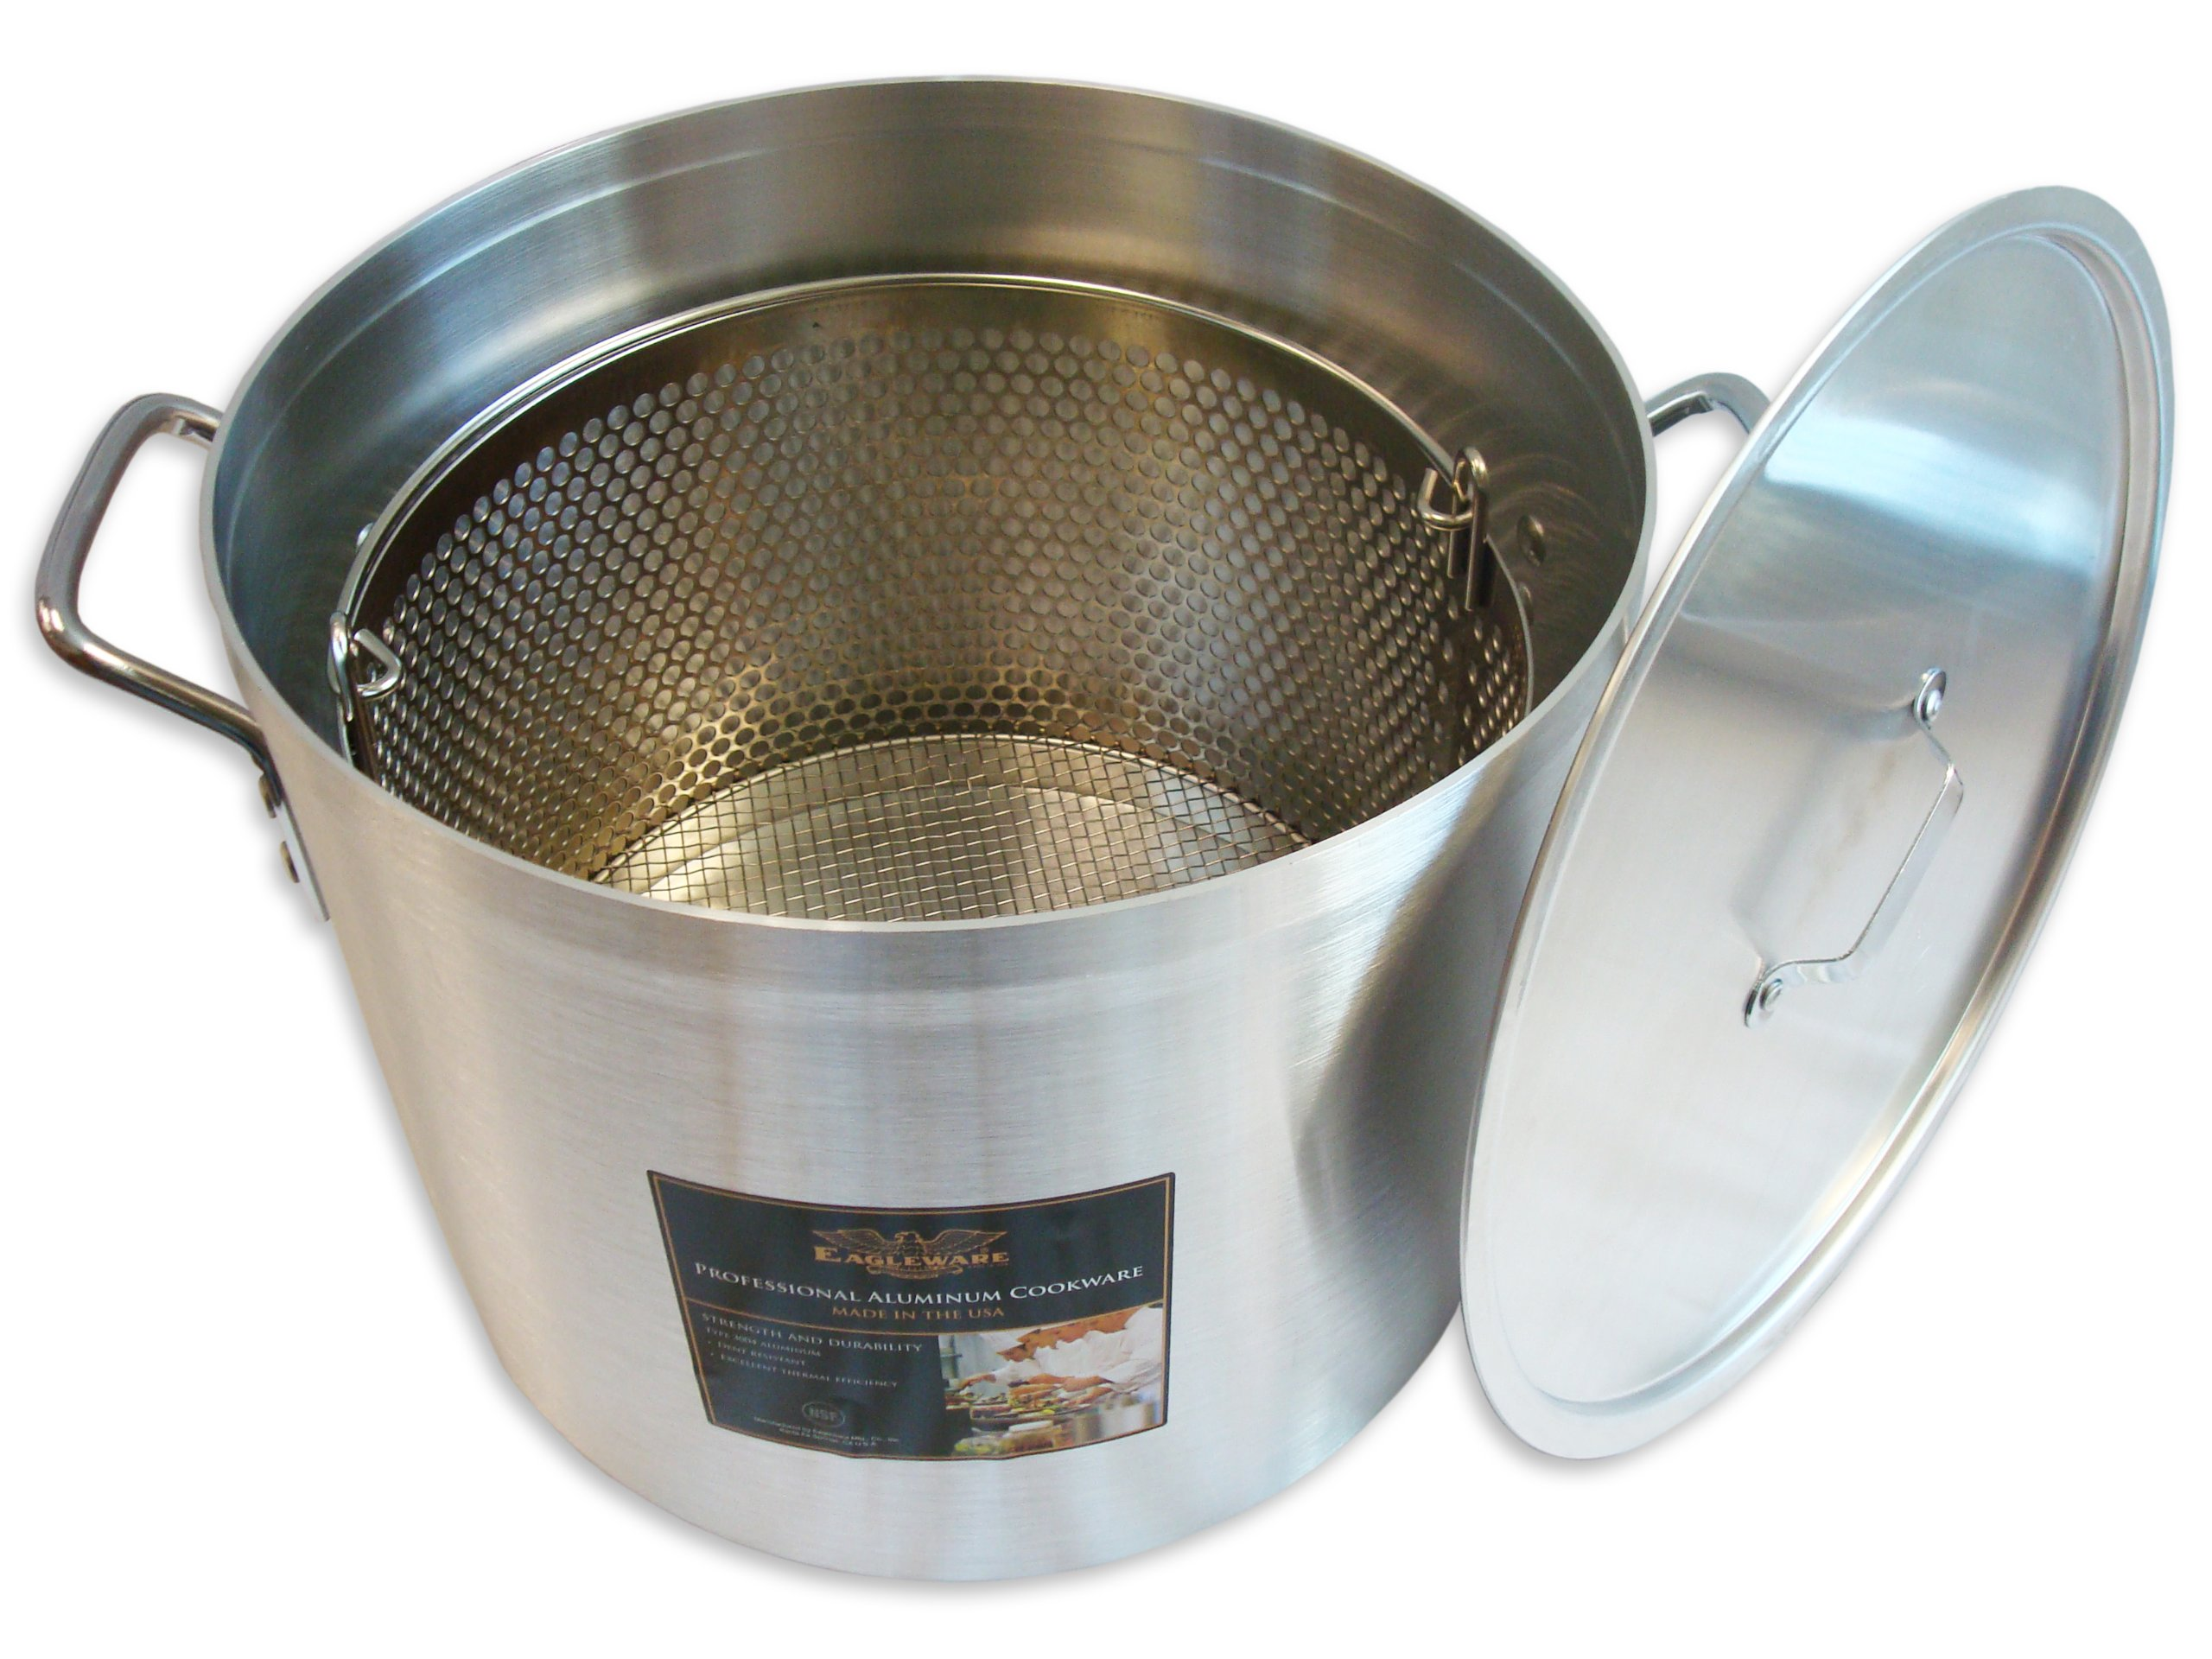 Alegacy EWSB40 Eagleware Professional Aluminum Stock Pot with Straining Basket and Lid, 40-Quart by Alegacy